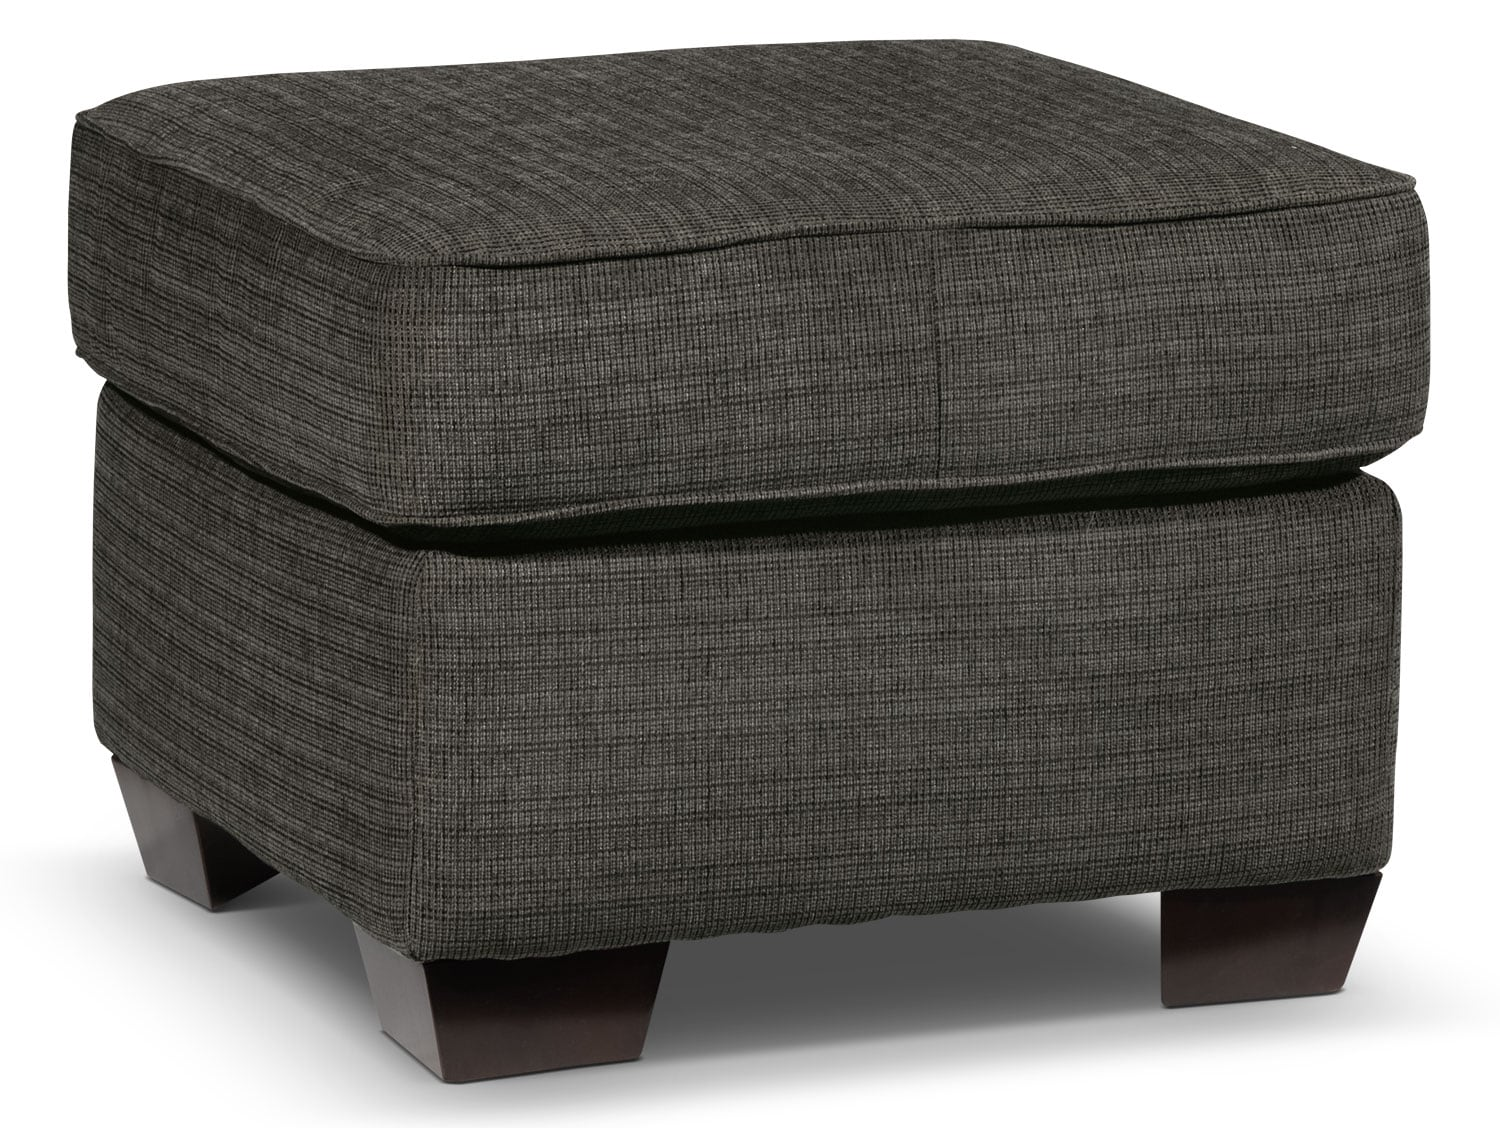 Living Room Furniture - Perkin Ottoman - Graphite